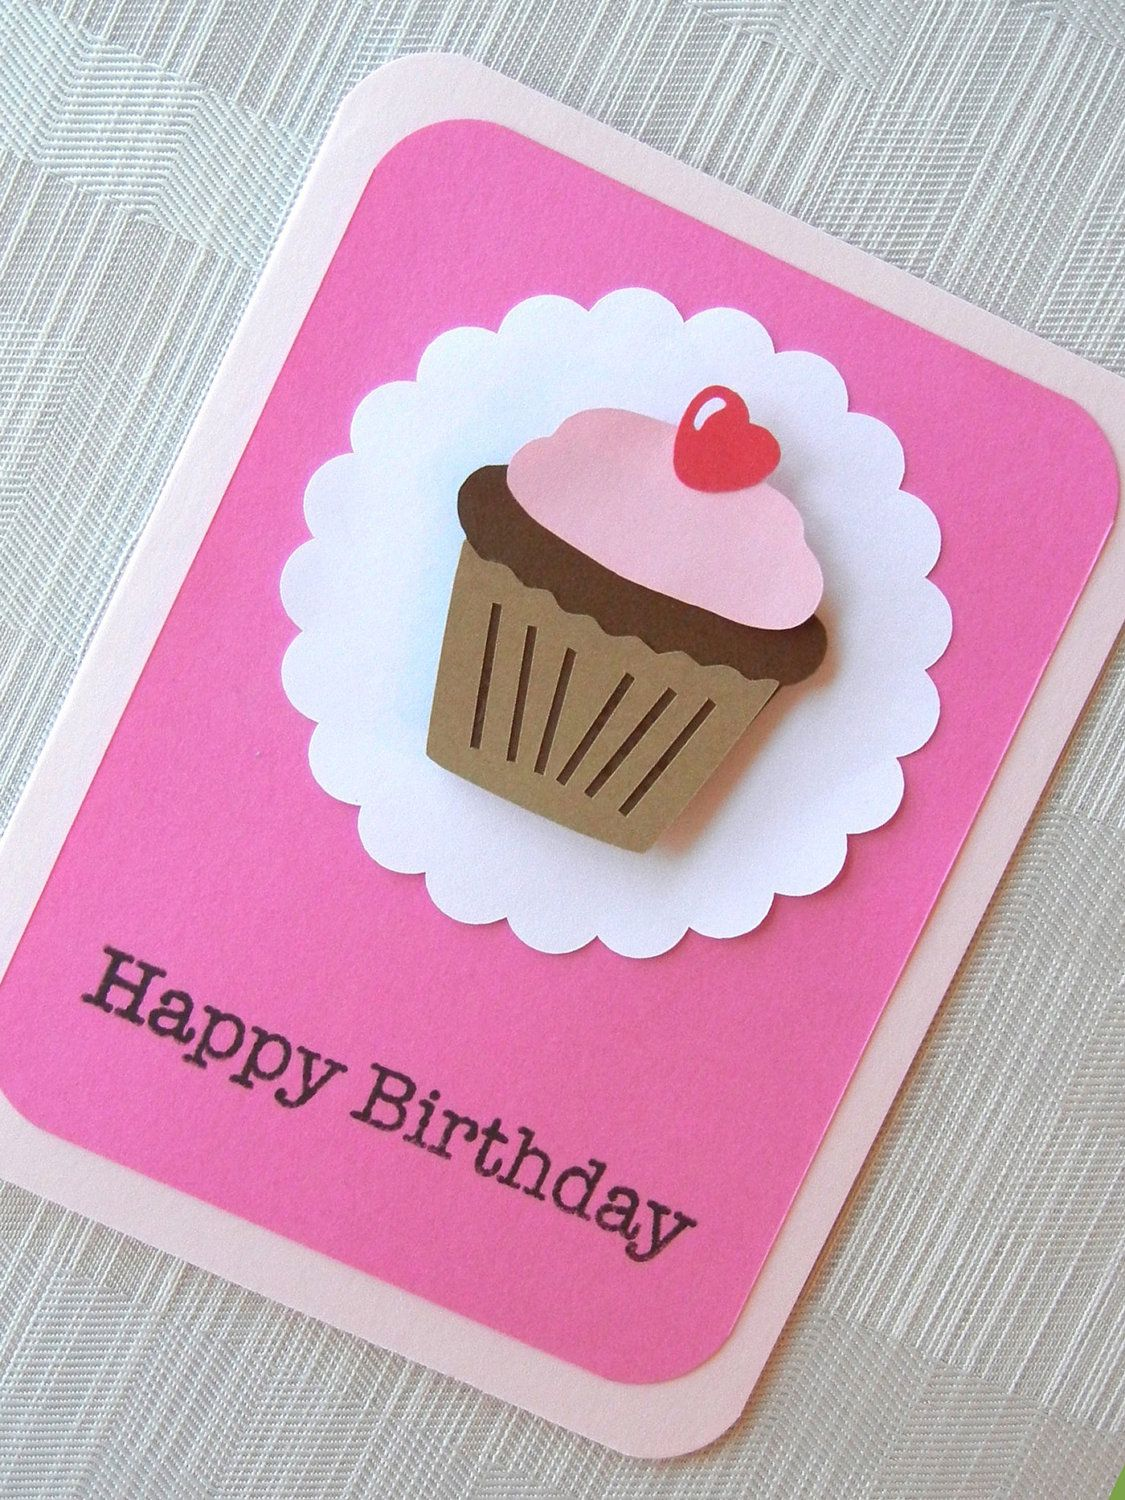 41 Handmade Birthday Card Ideas With Images And Steps Birthday